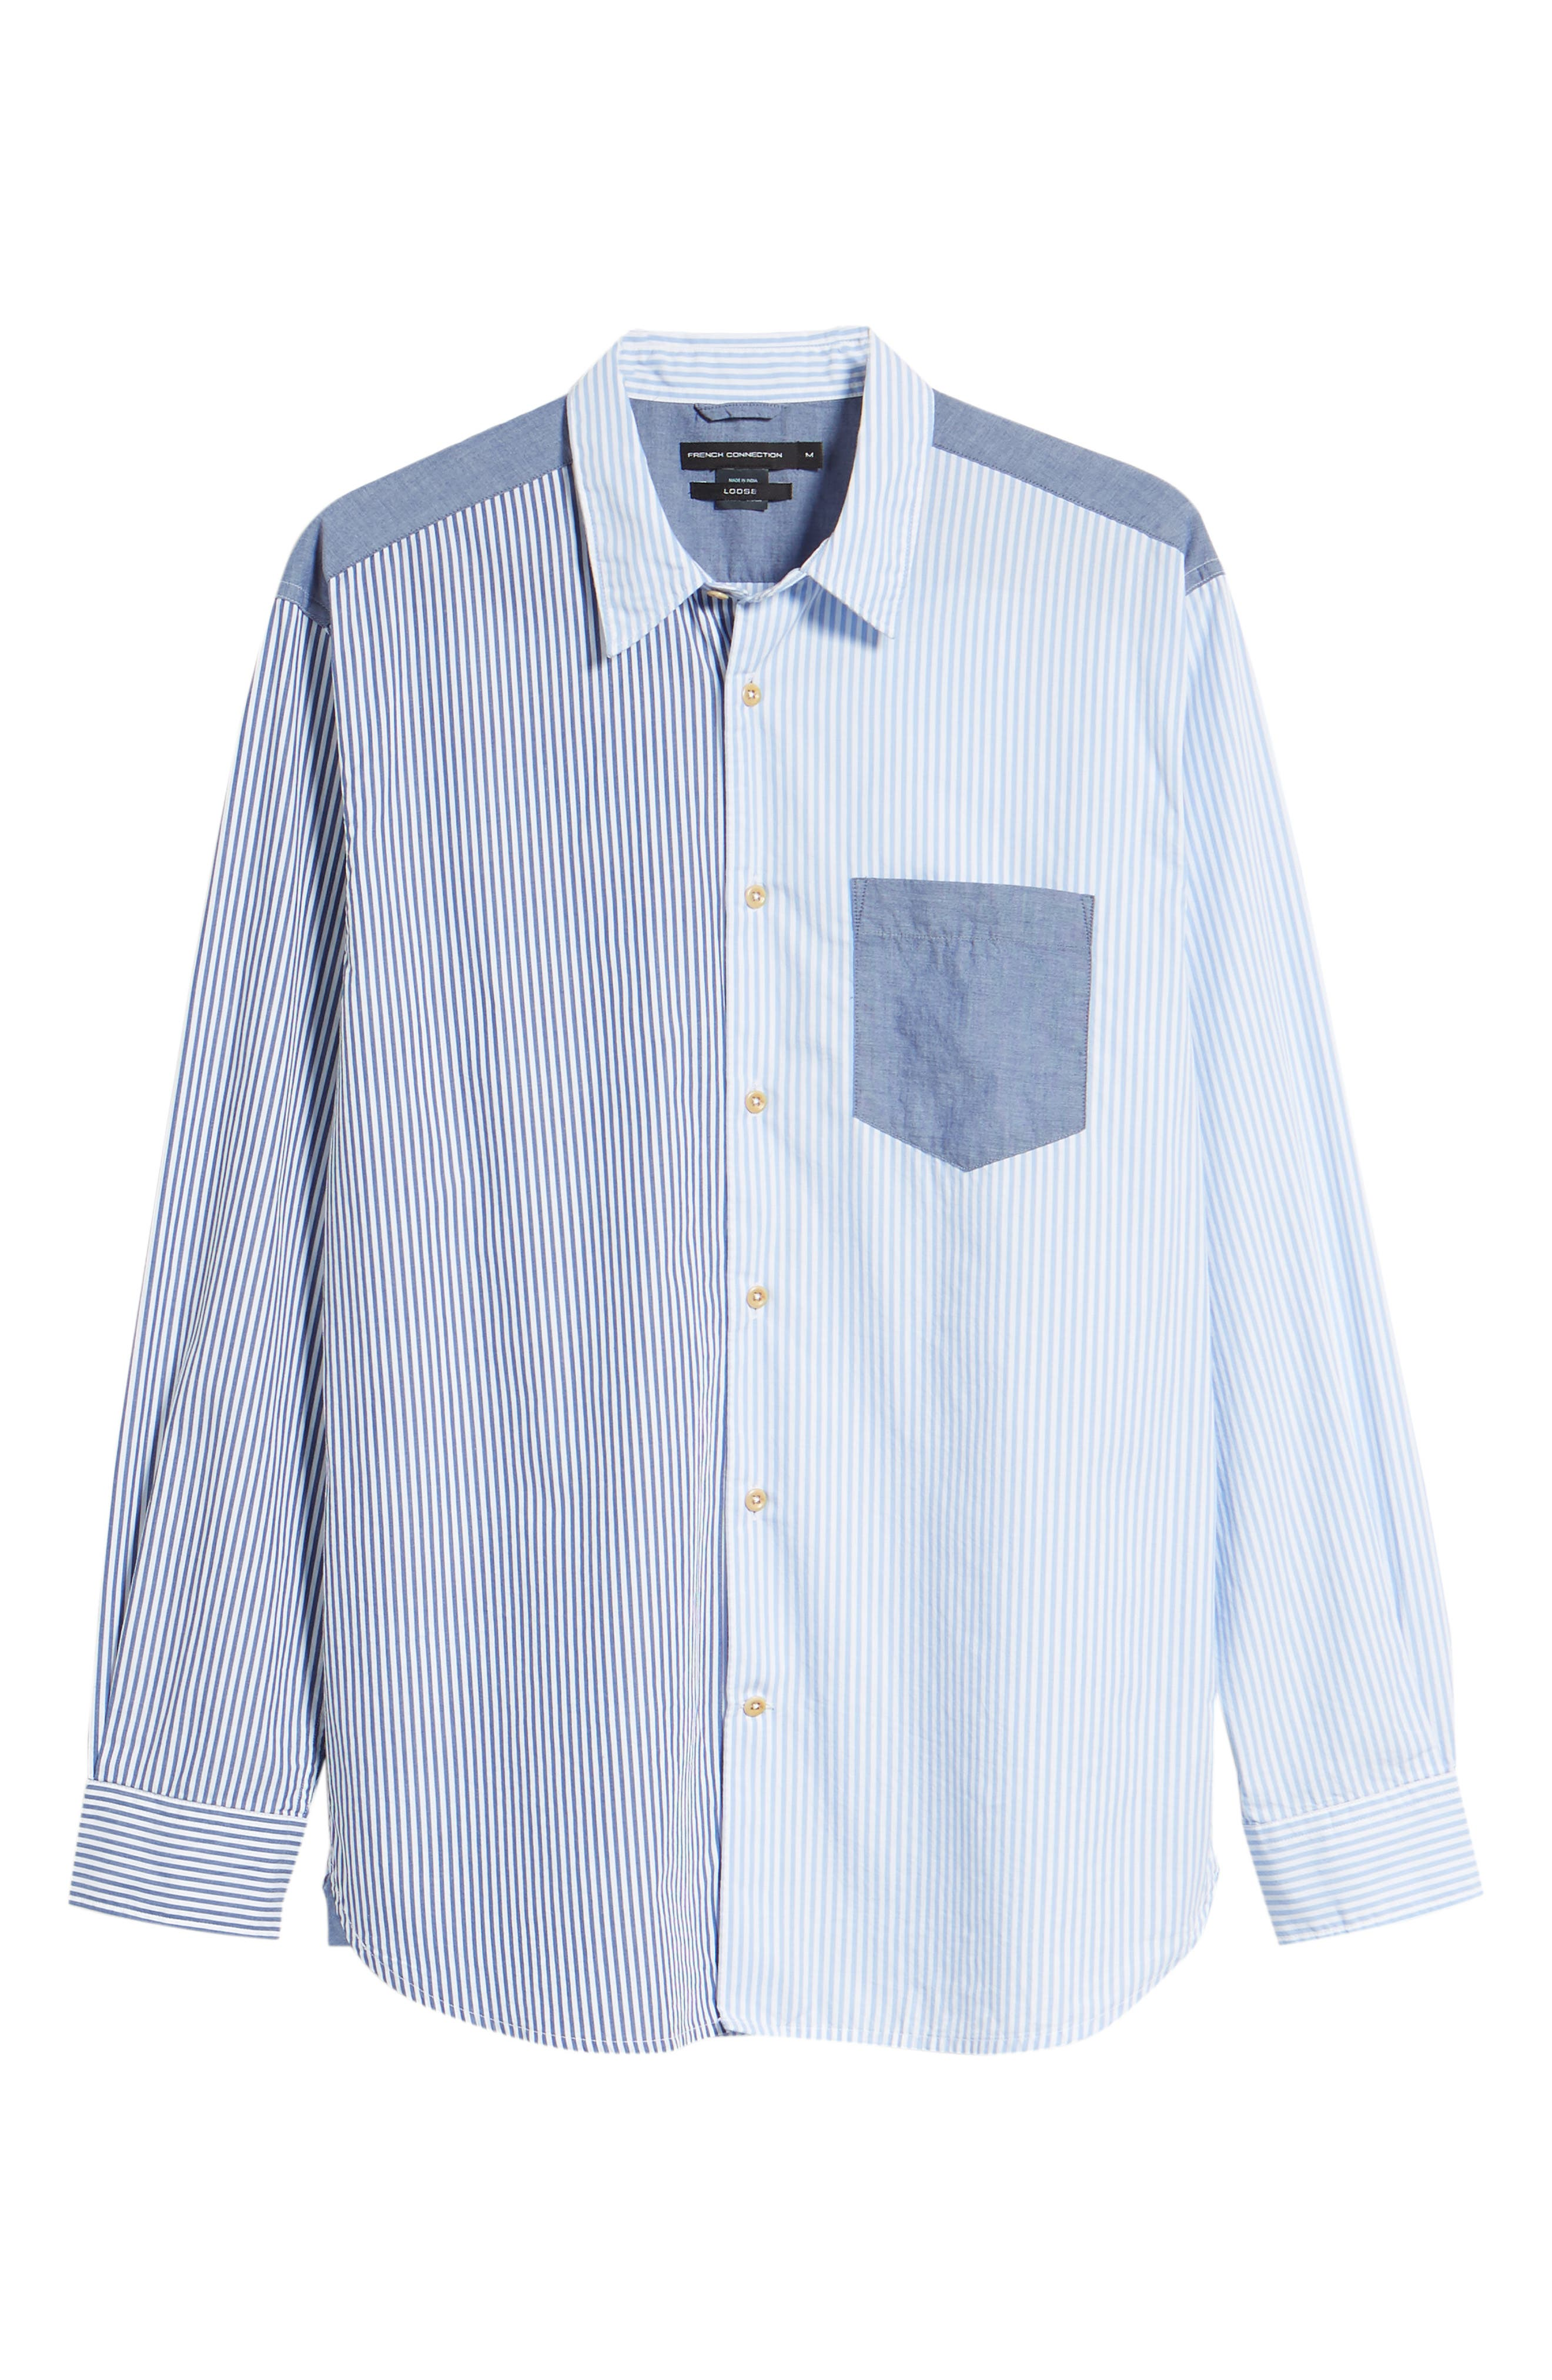 Patchwork Relaxed Fit Sport Shirt,                             Alternate thumbnail 6, color,                             416